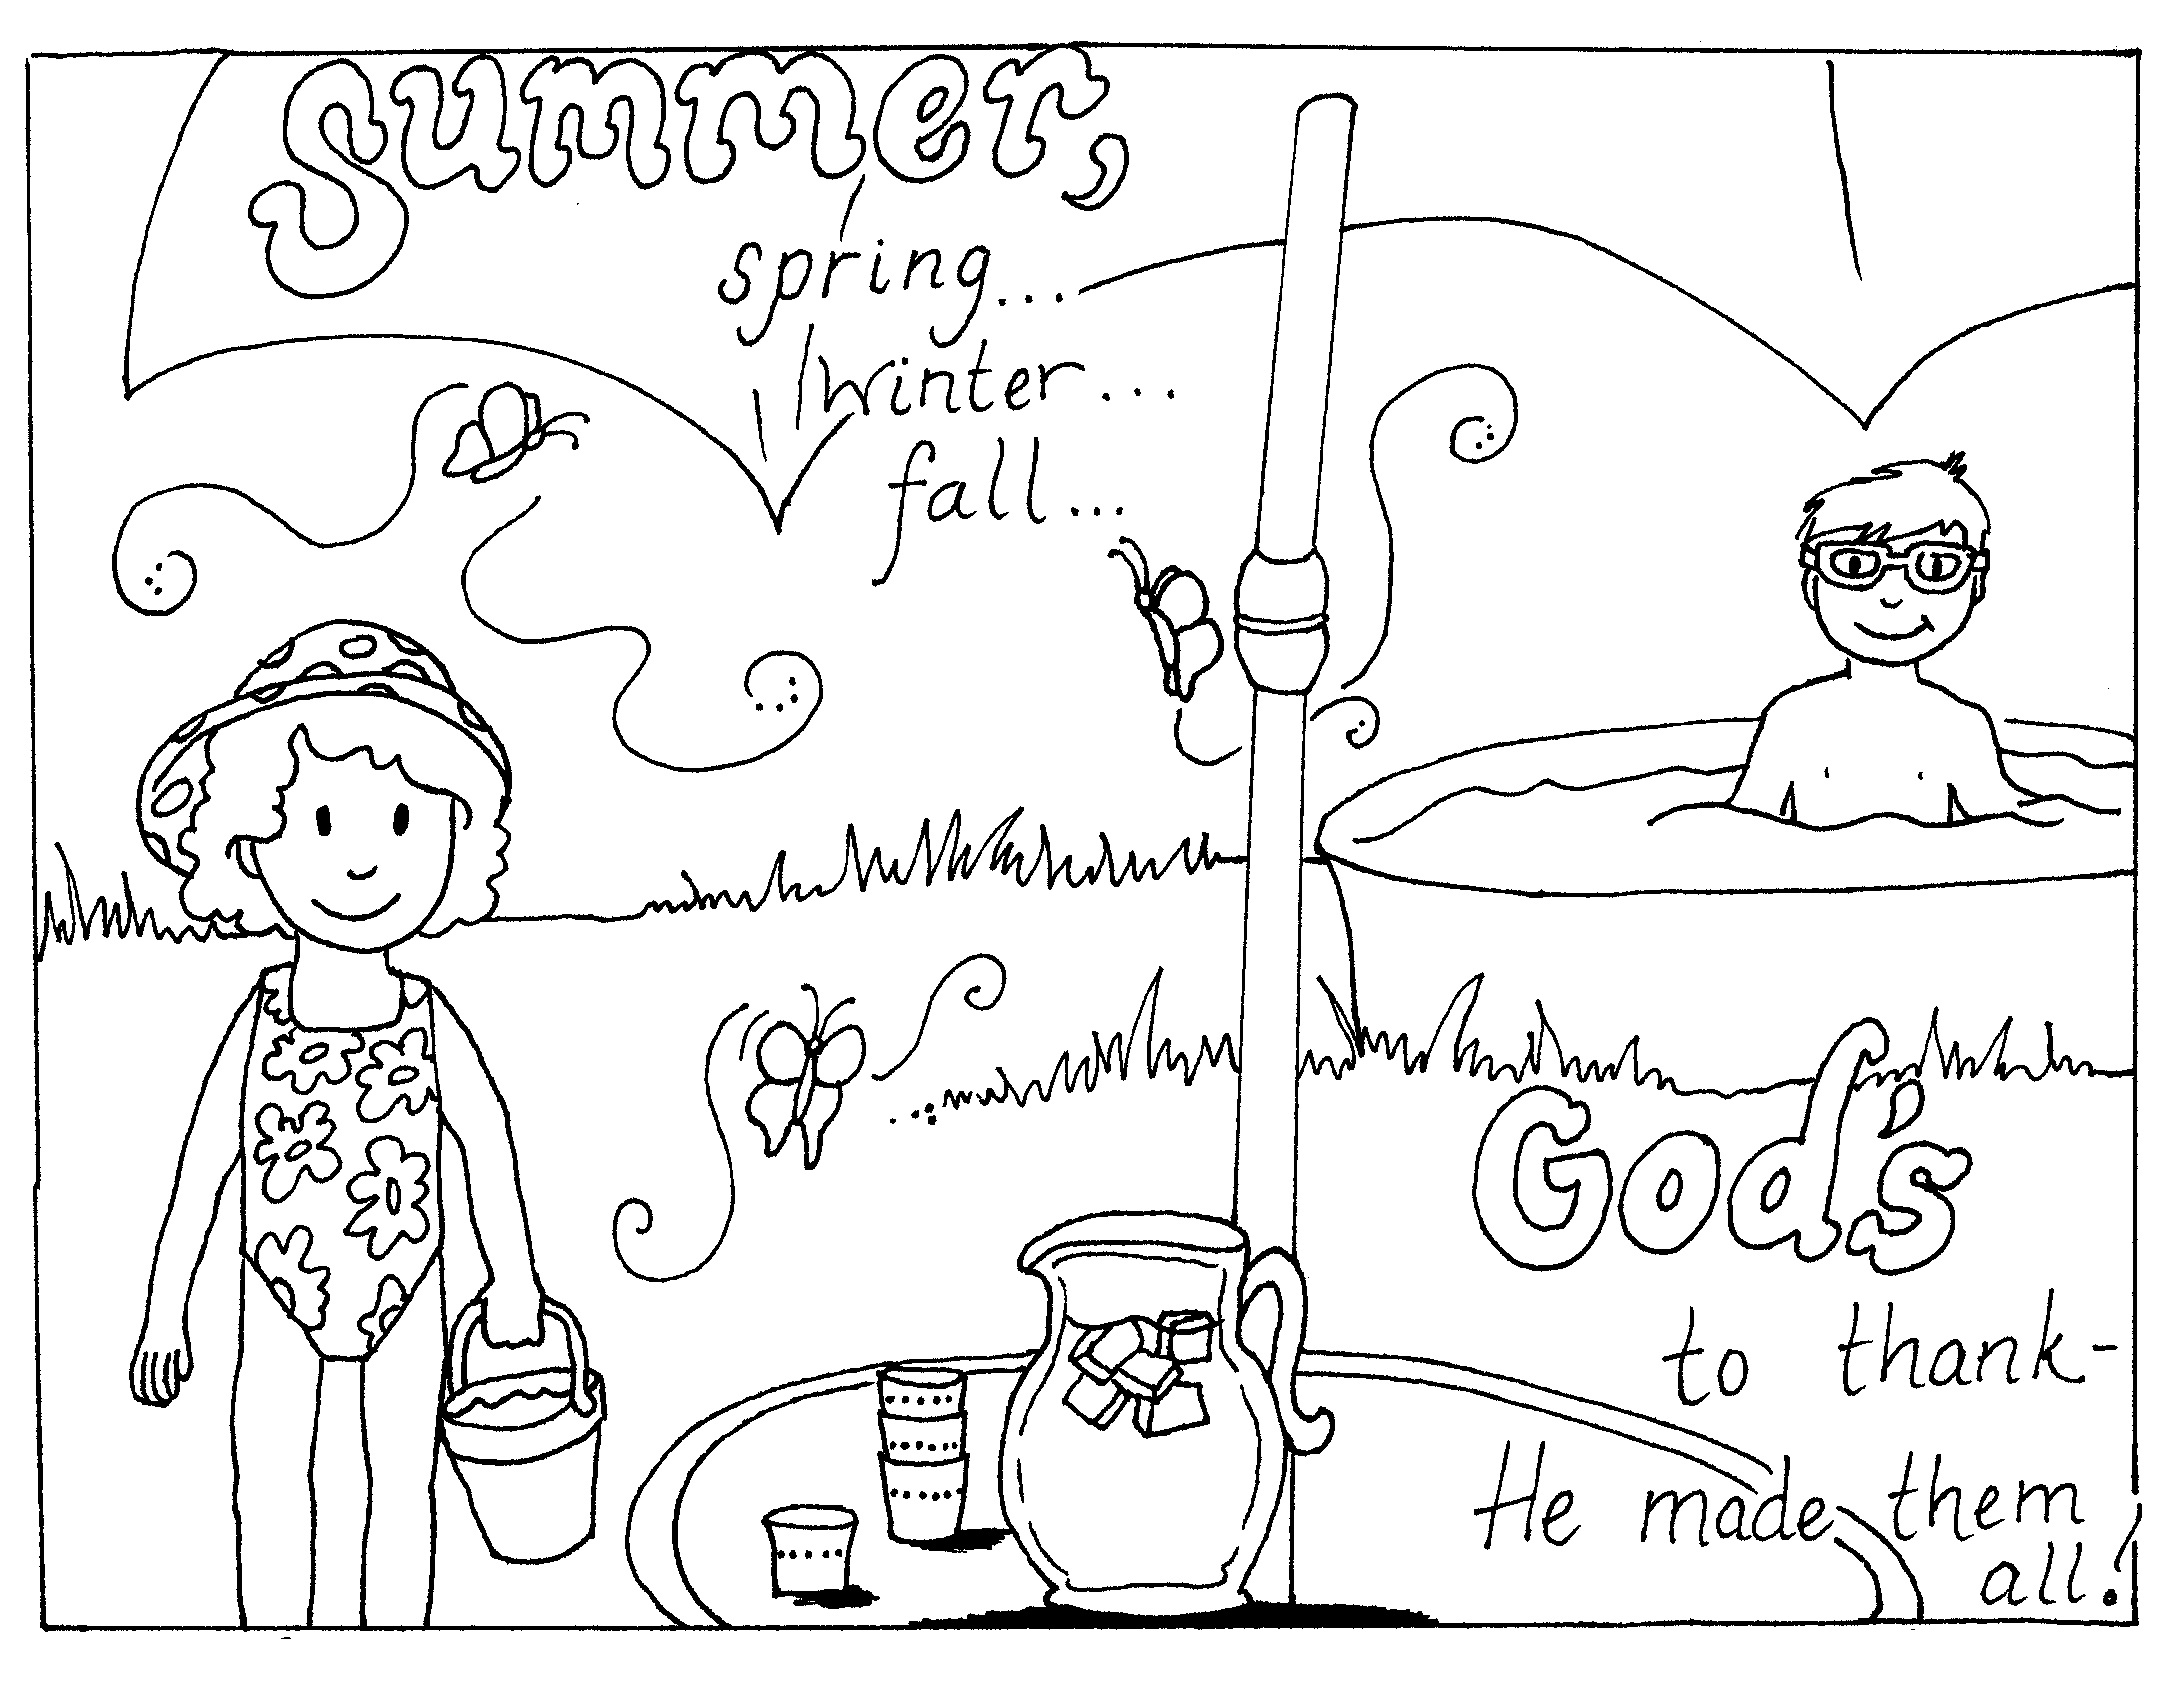 - Free Summer Coloring Page - Free Coloring Pages Online